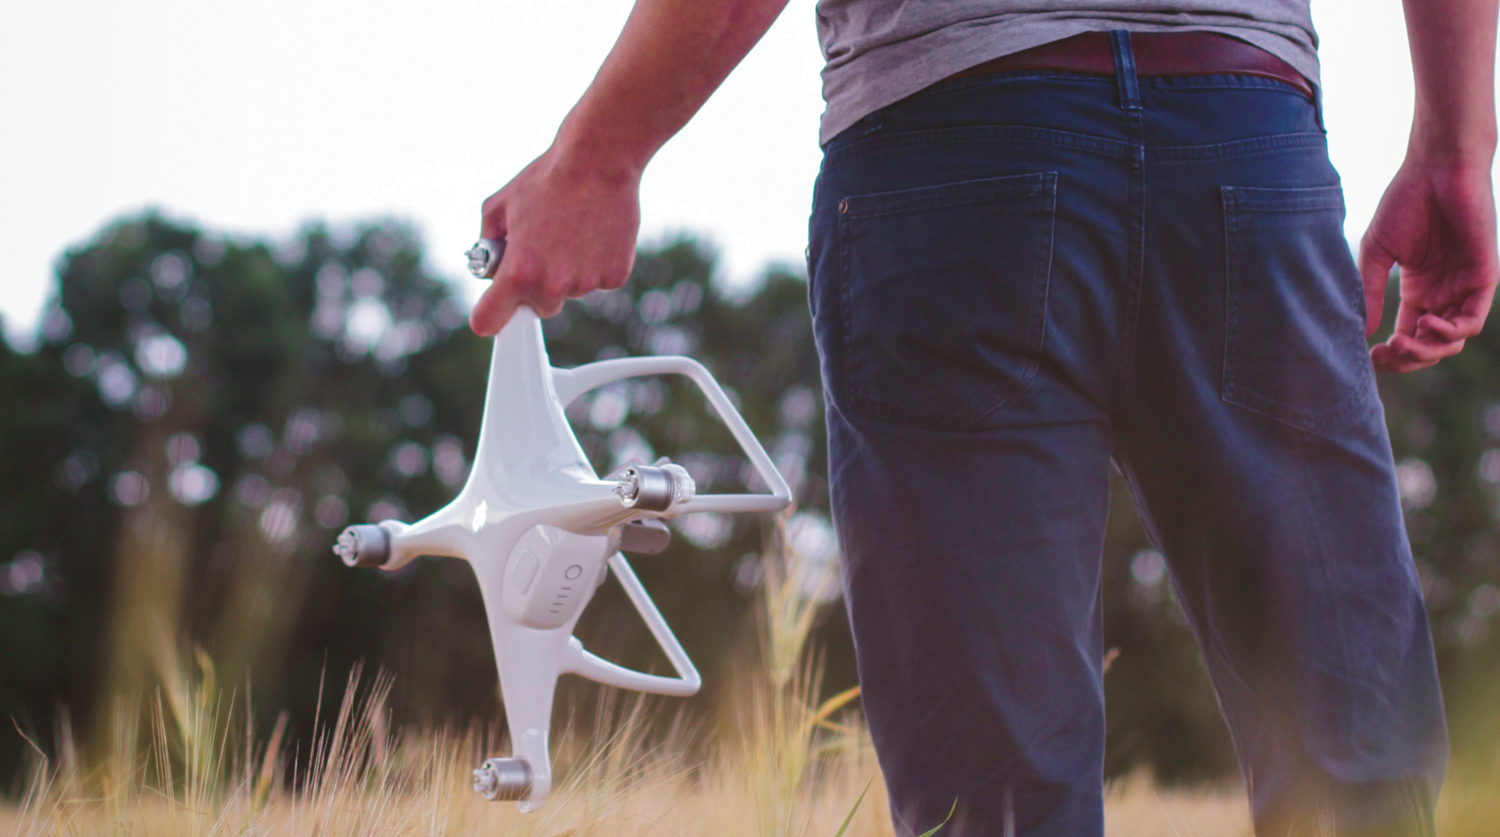 Photo of a drone.